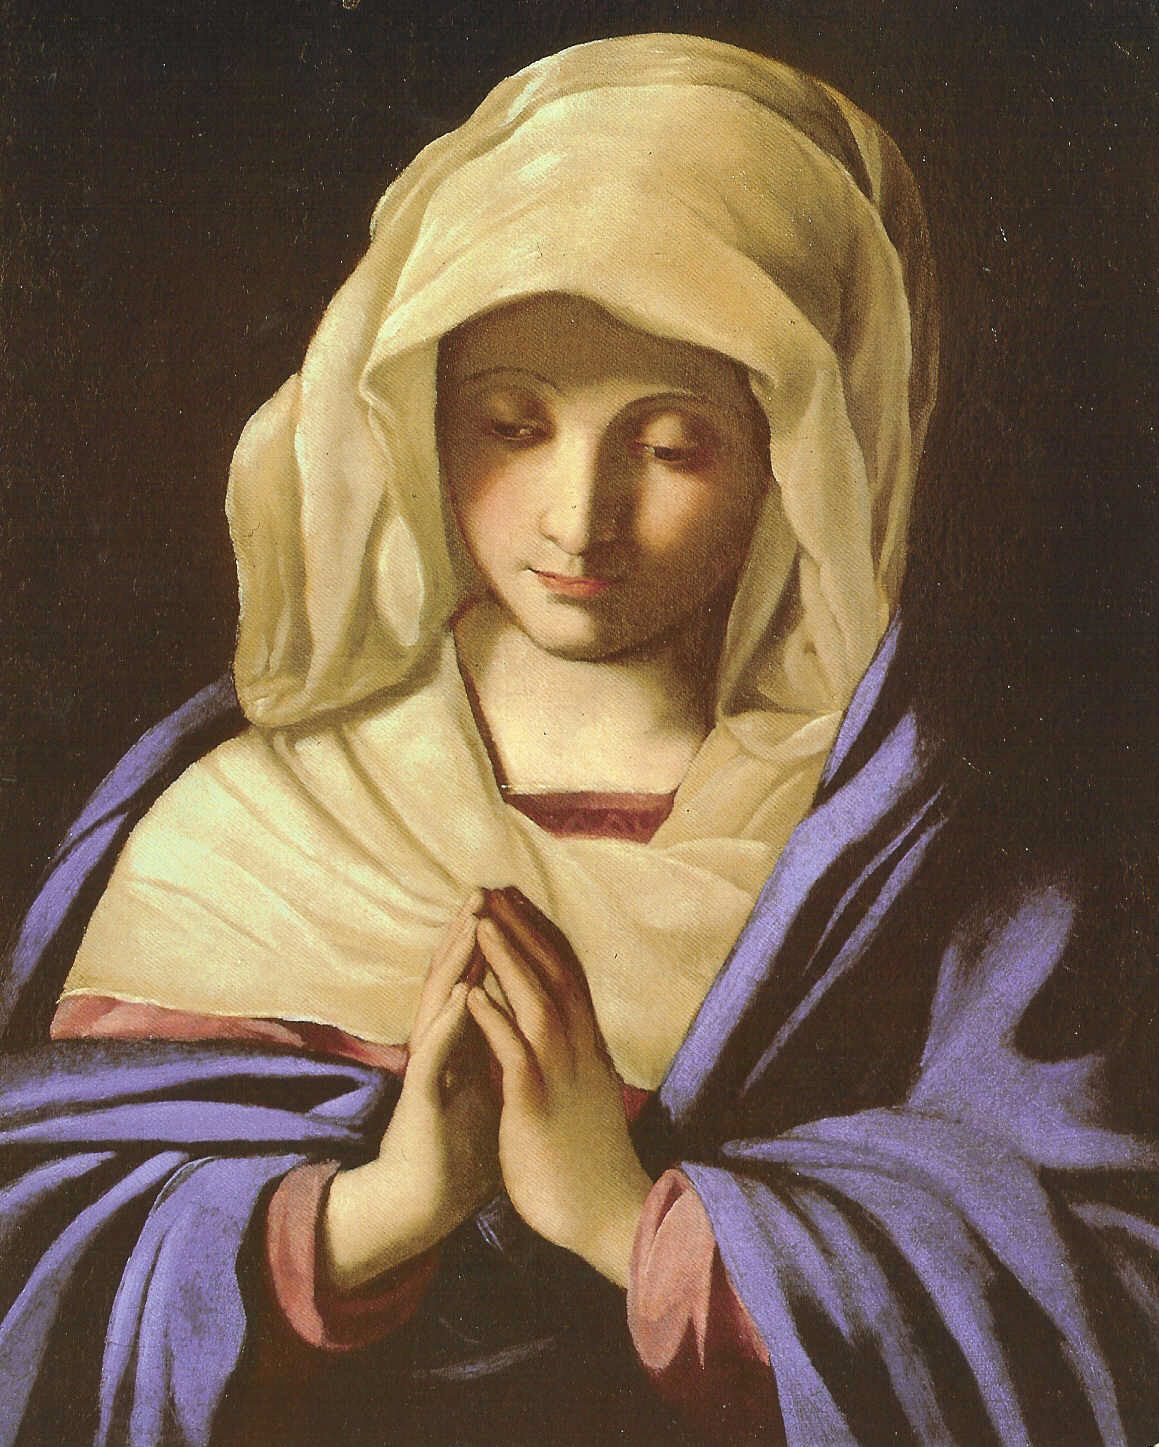 Light Up Virgin Mary Picture